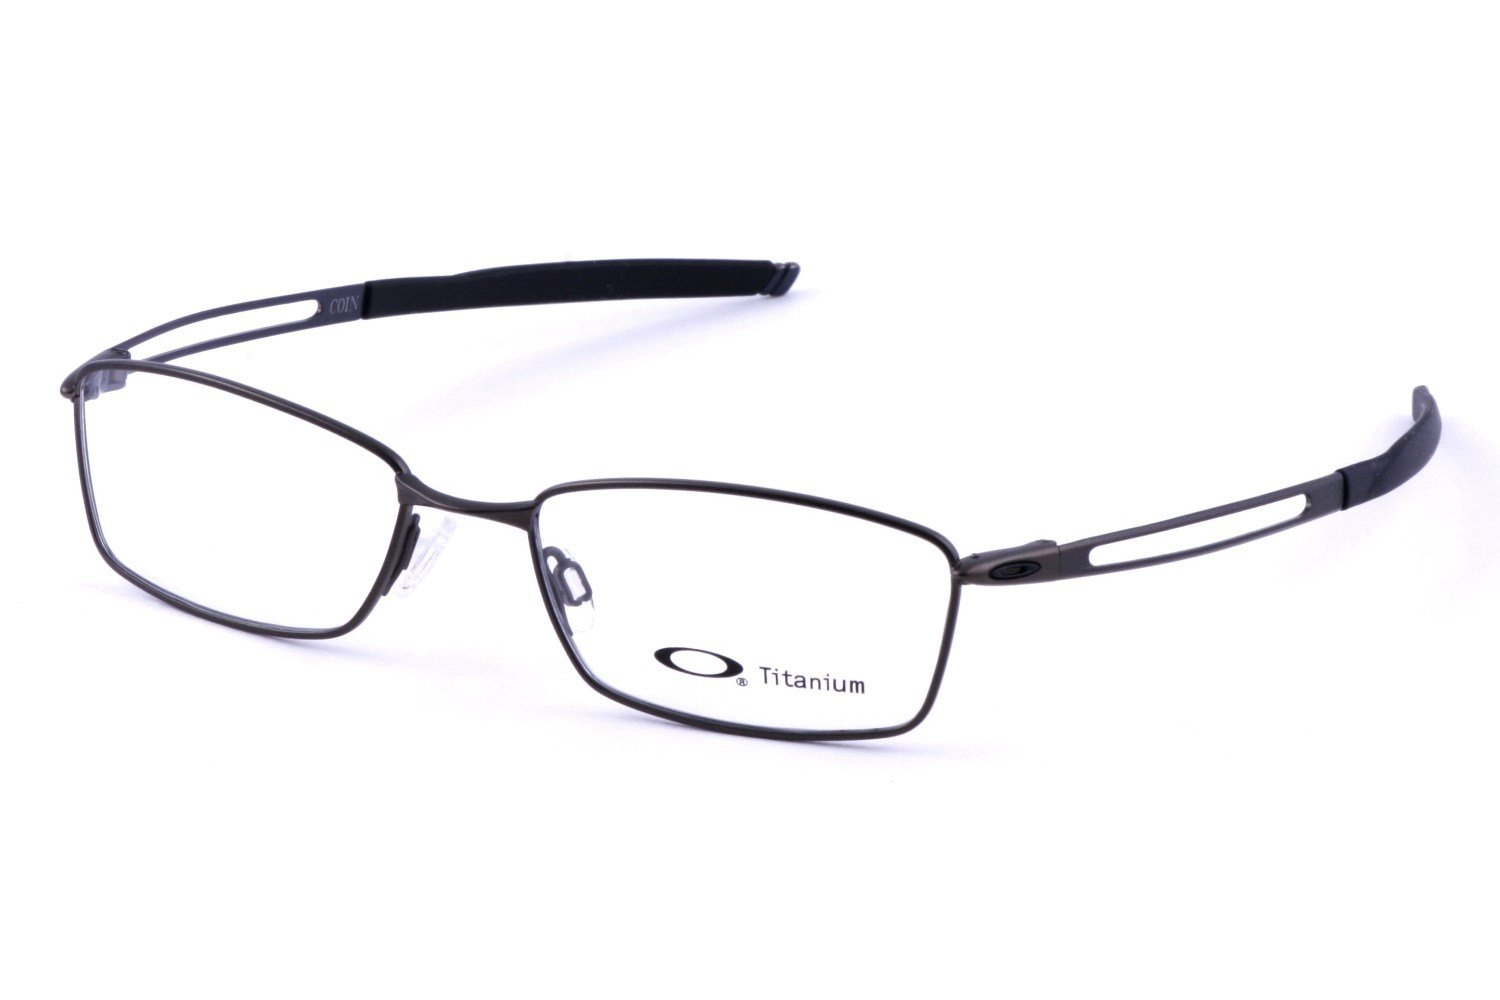 oakley coin 54 prescription eyeglasses